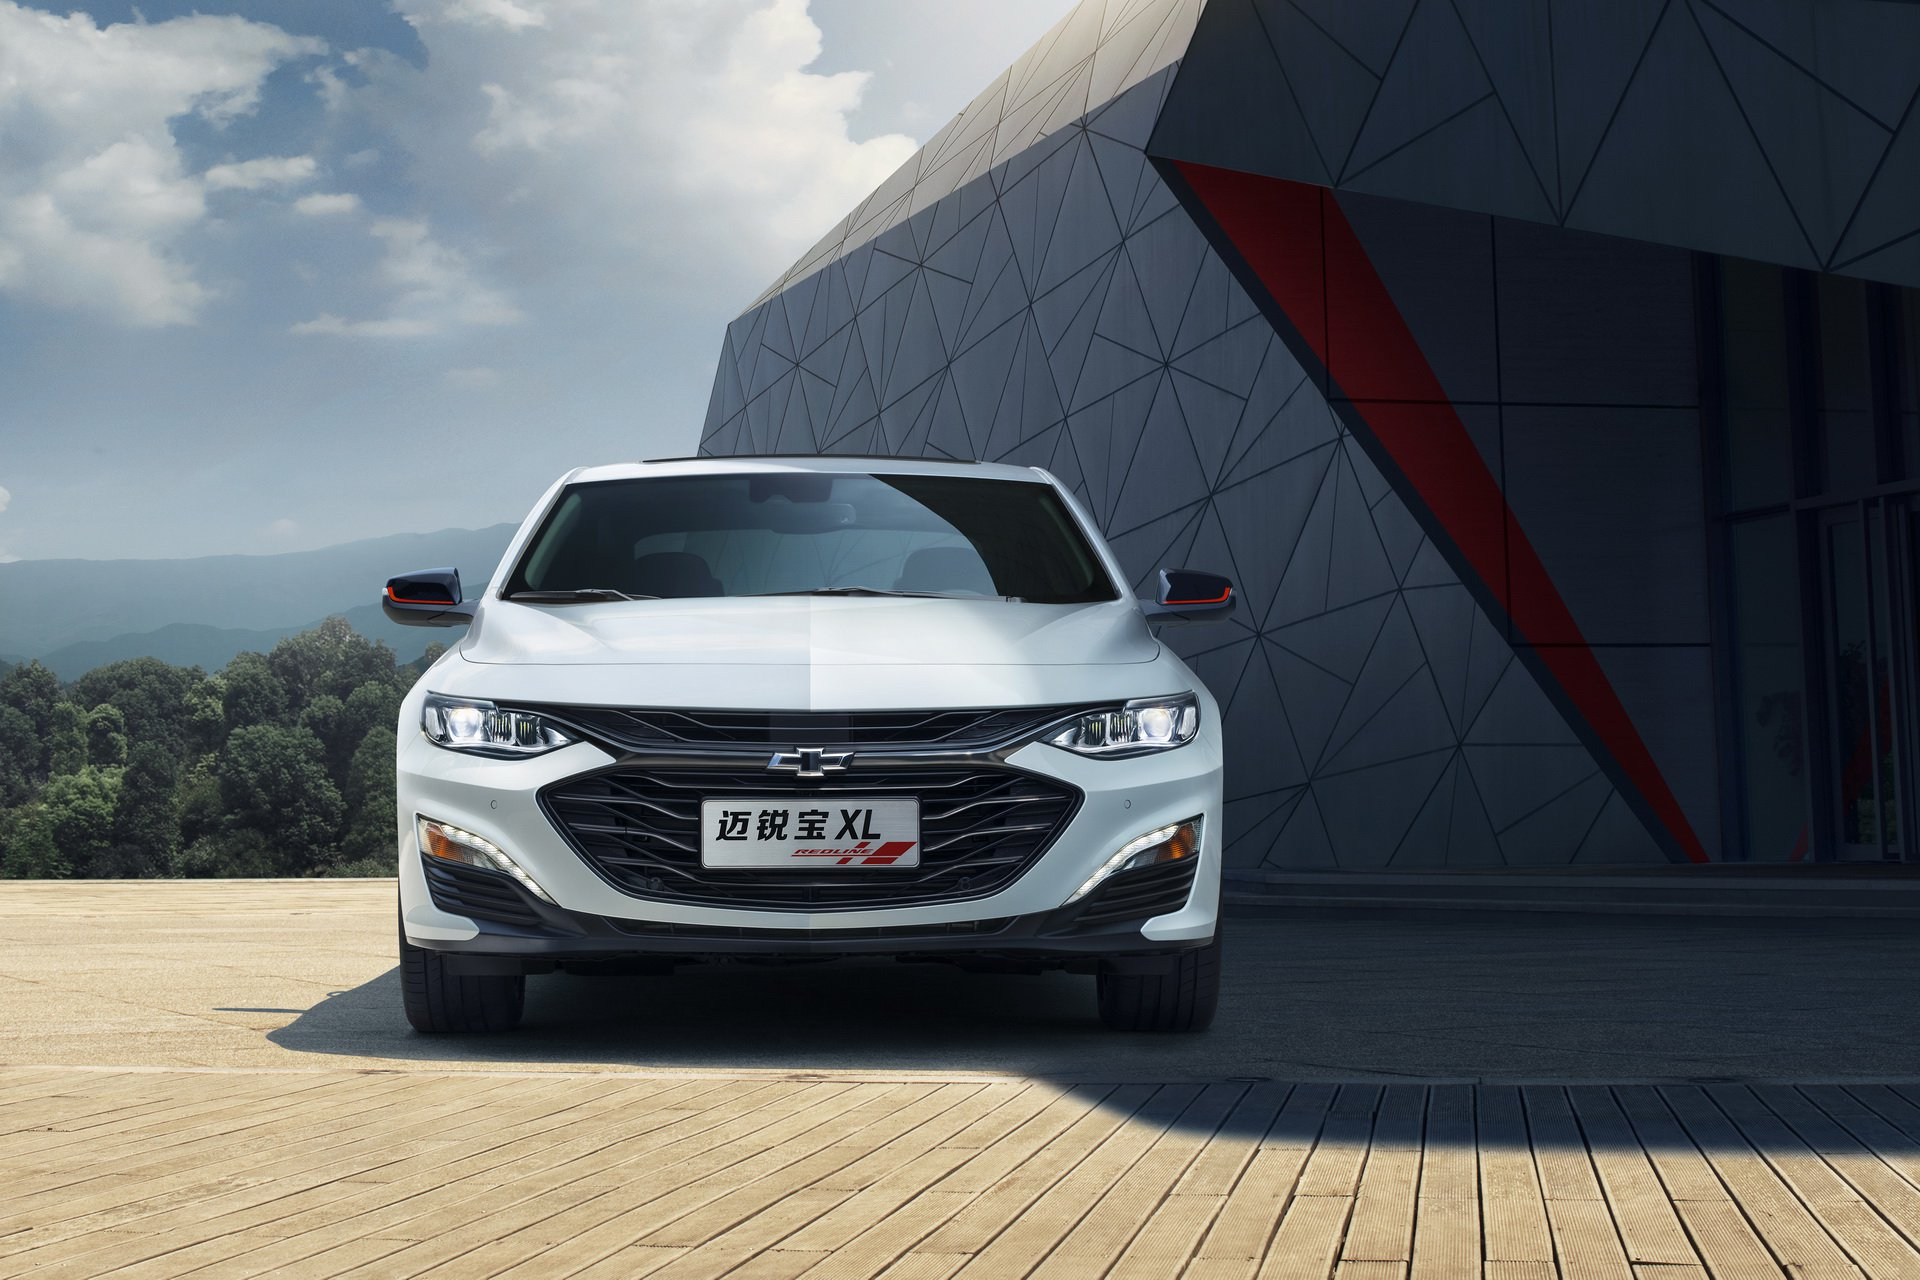 b2bbd8b6-chevrolet-new-models-unveiled-guangzhou-2018-3